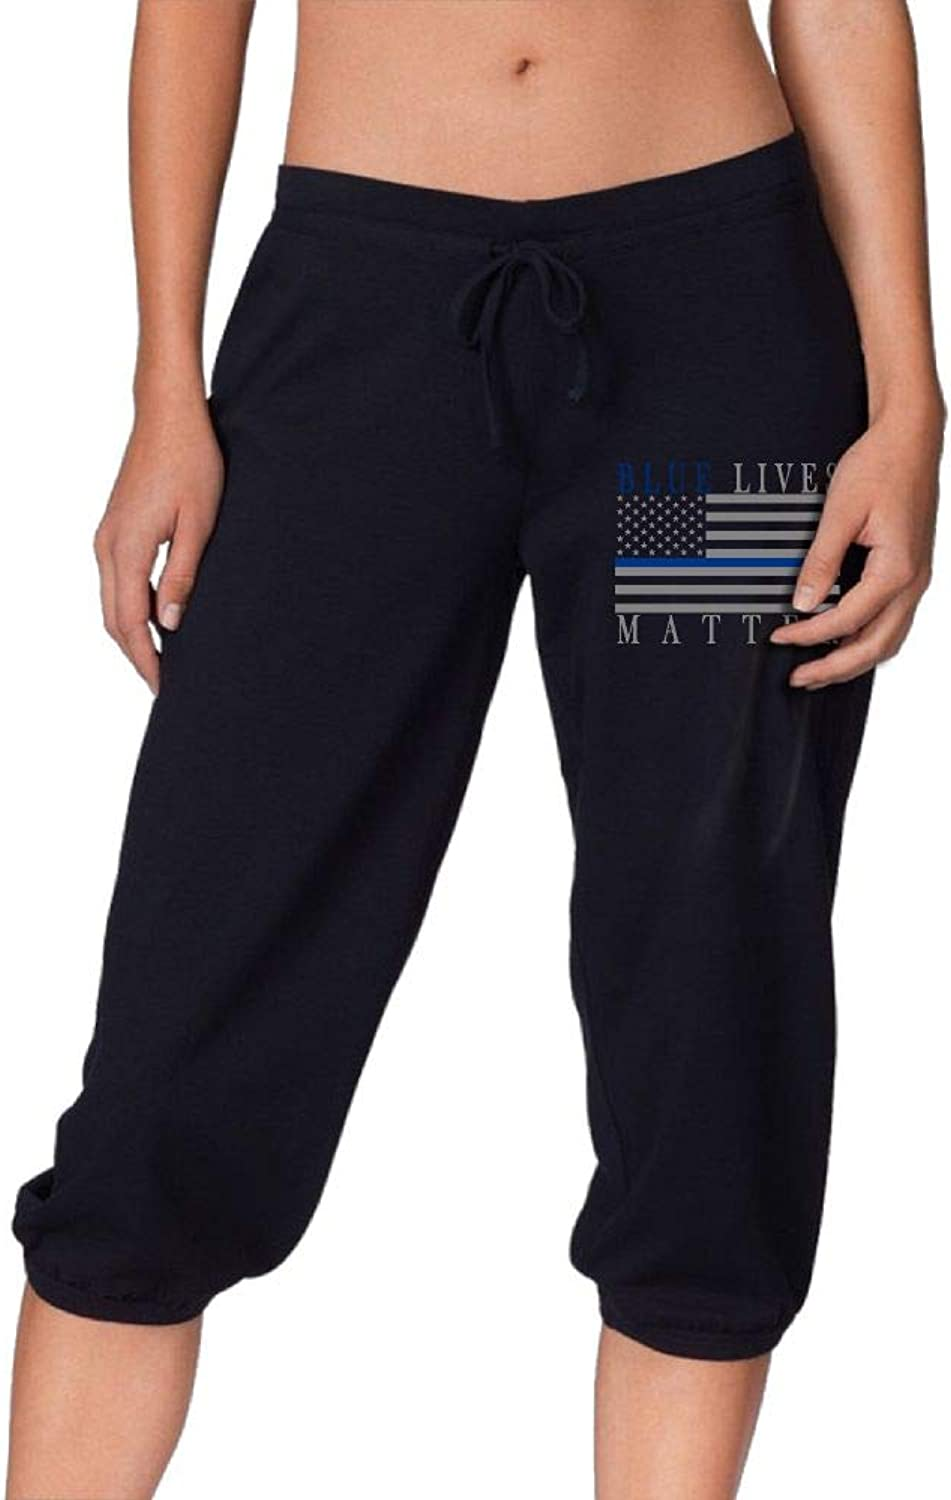 Pantsing bluee Lives Matter Women's Fit Active French Terry Capri Pants